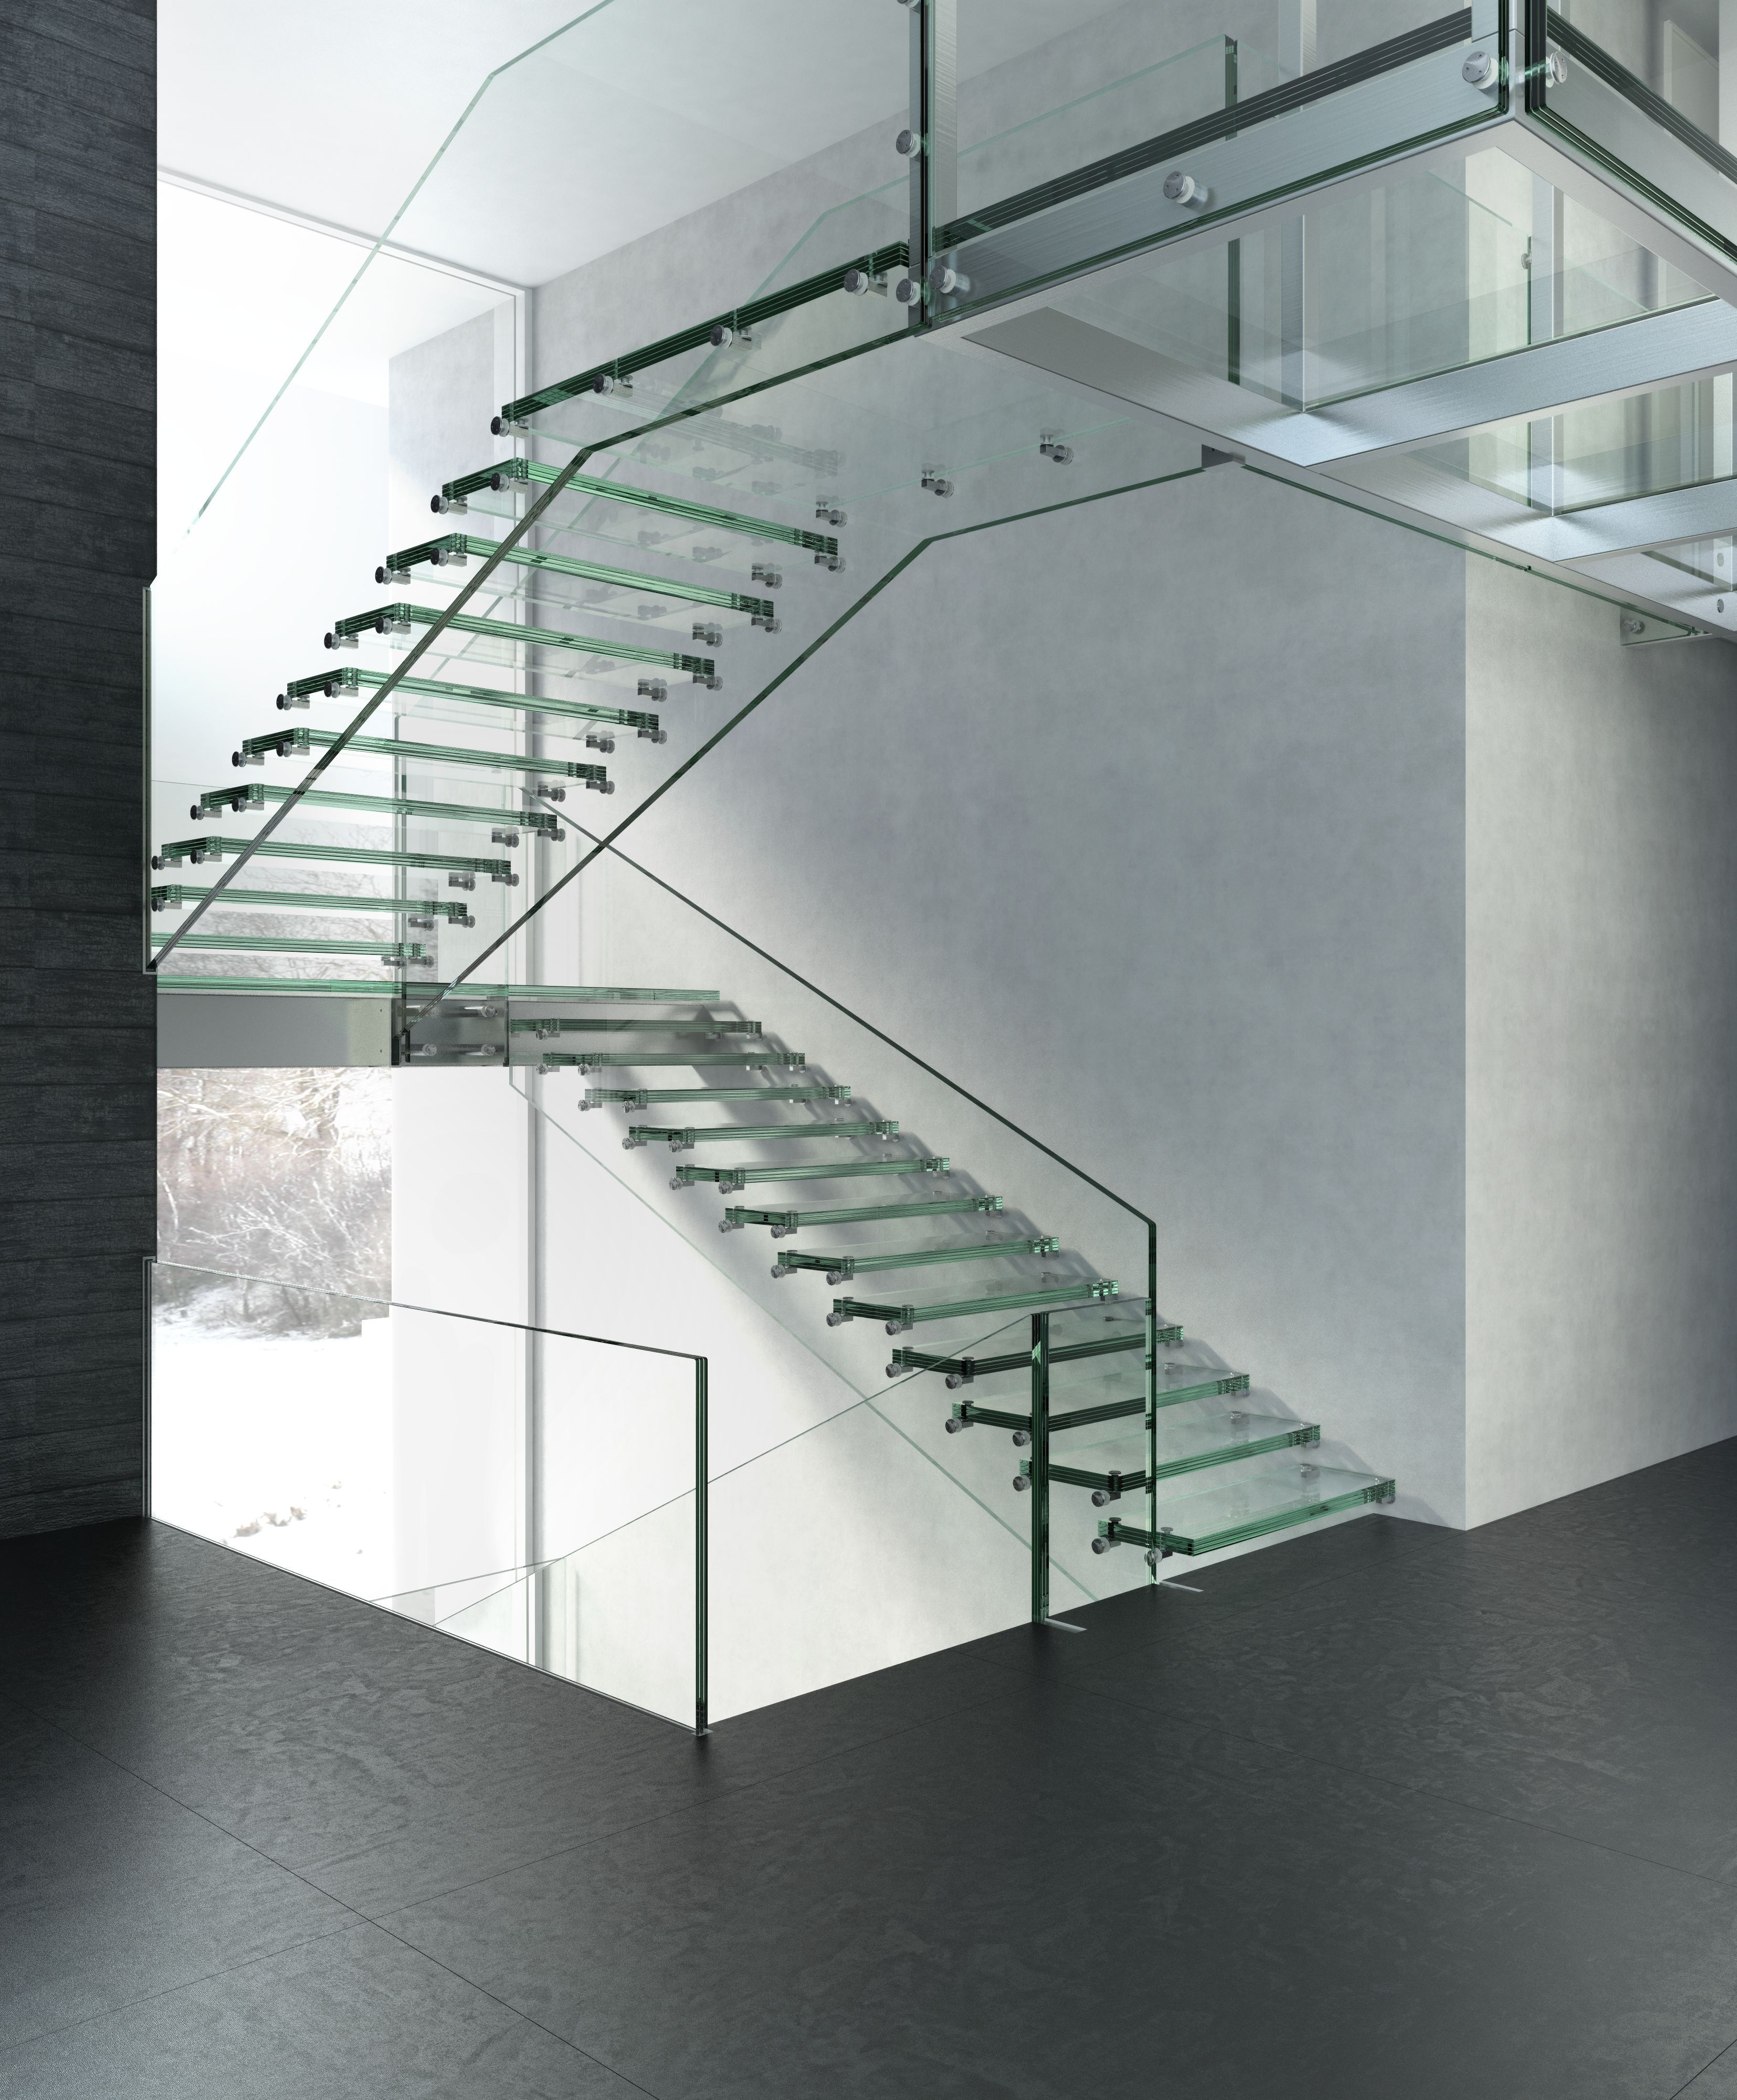 All Glass Stair With Floating Glass Walkway At Big Sky, Montana, USA Www.